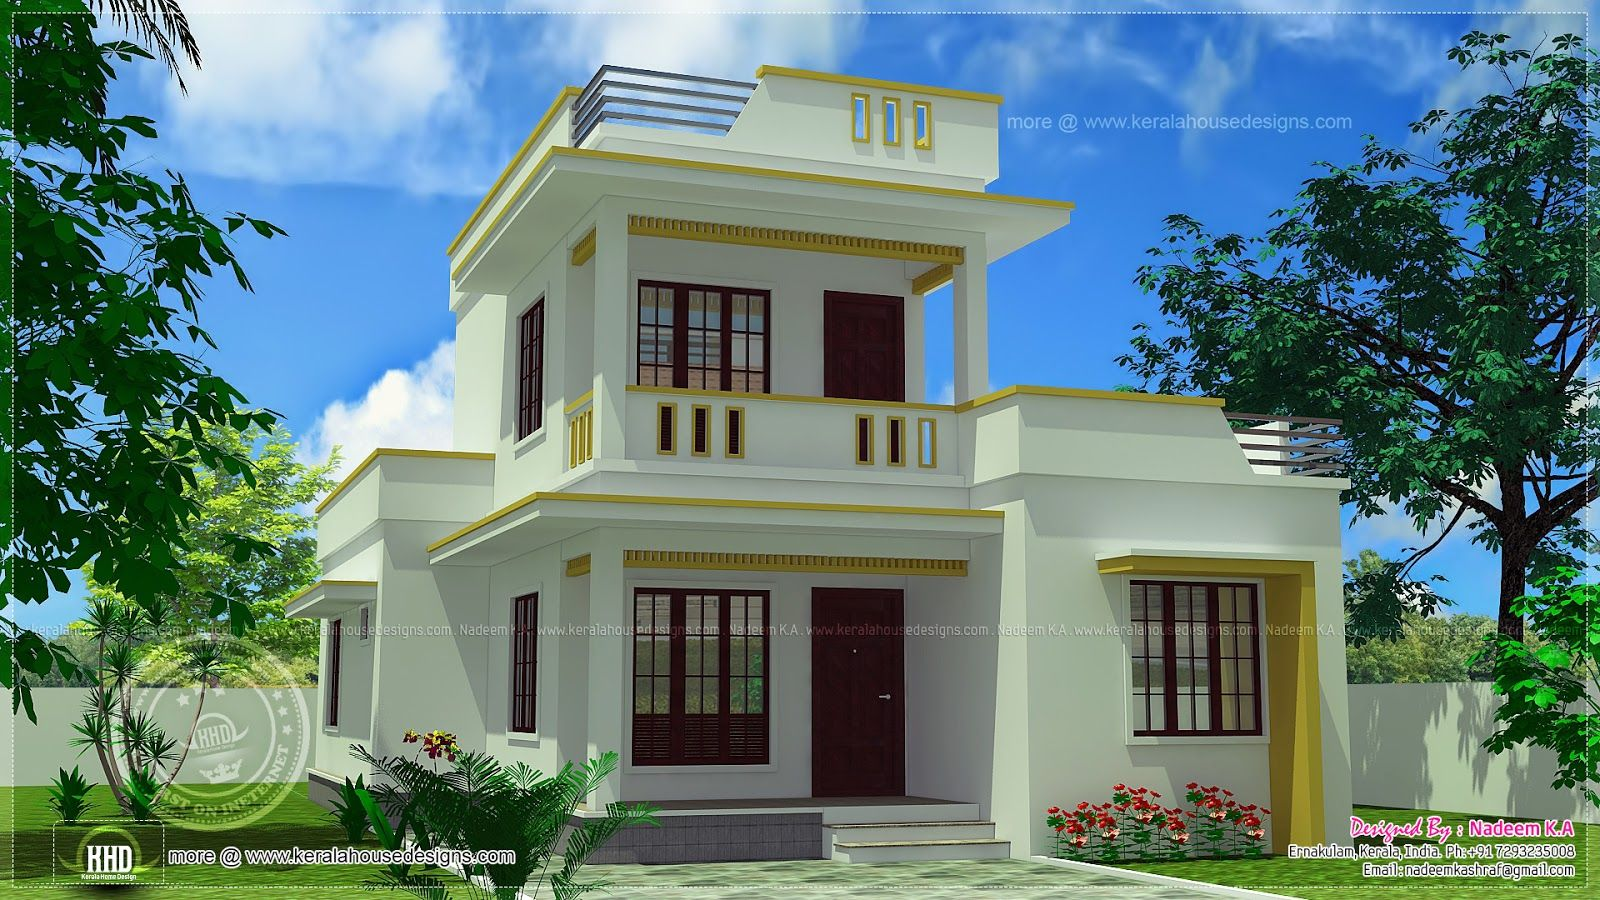 Roof home design feet kerala plans simple modern house for Minimalist house design kerala